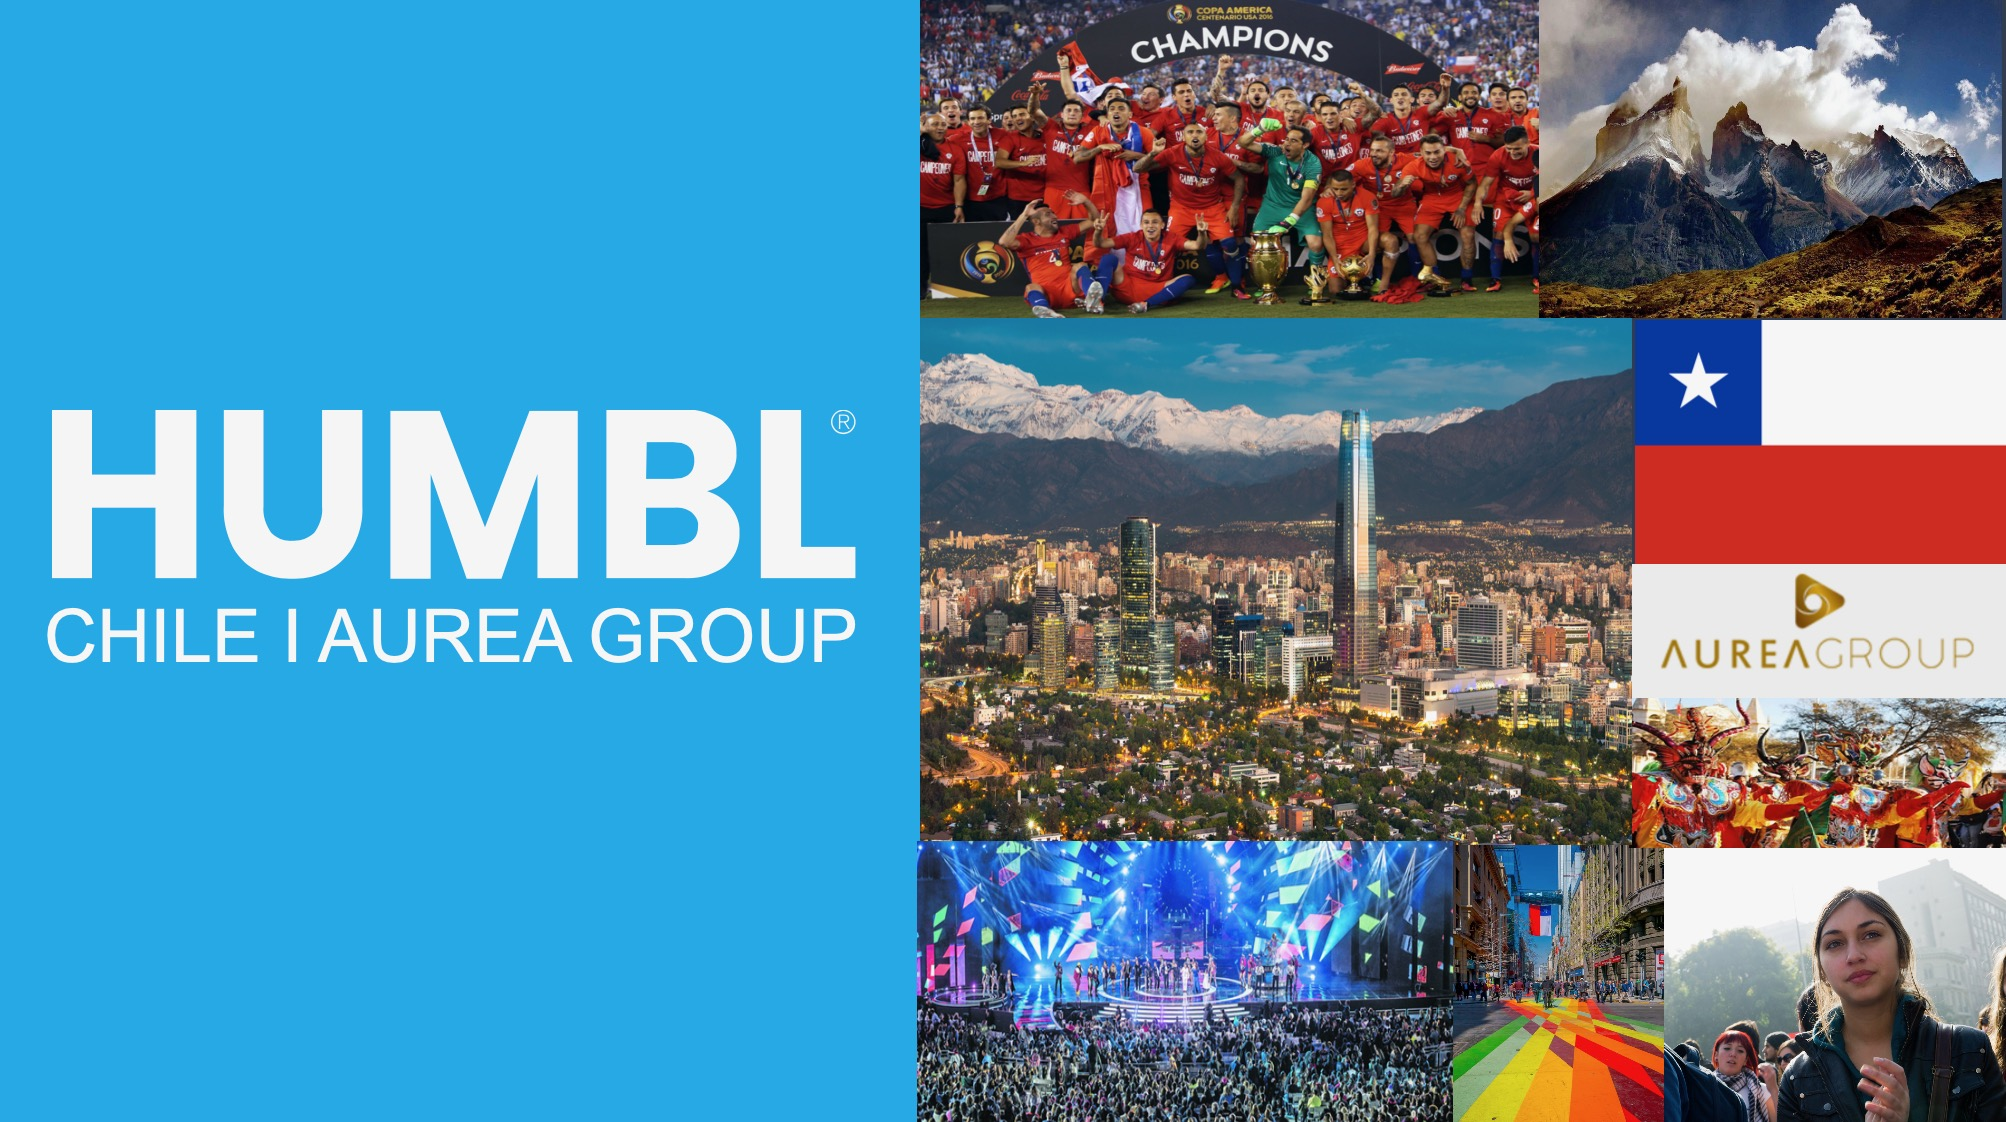 HUMBL, Inc. Announces Aurea Group Ventures Investment and Partnership for Exclusive Chile Country Rights